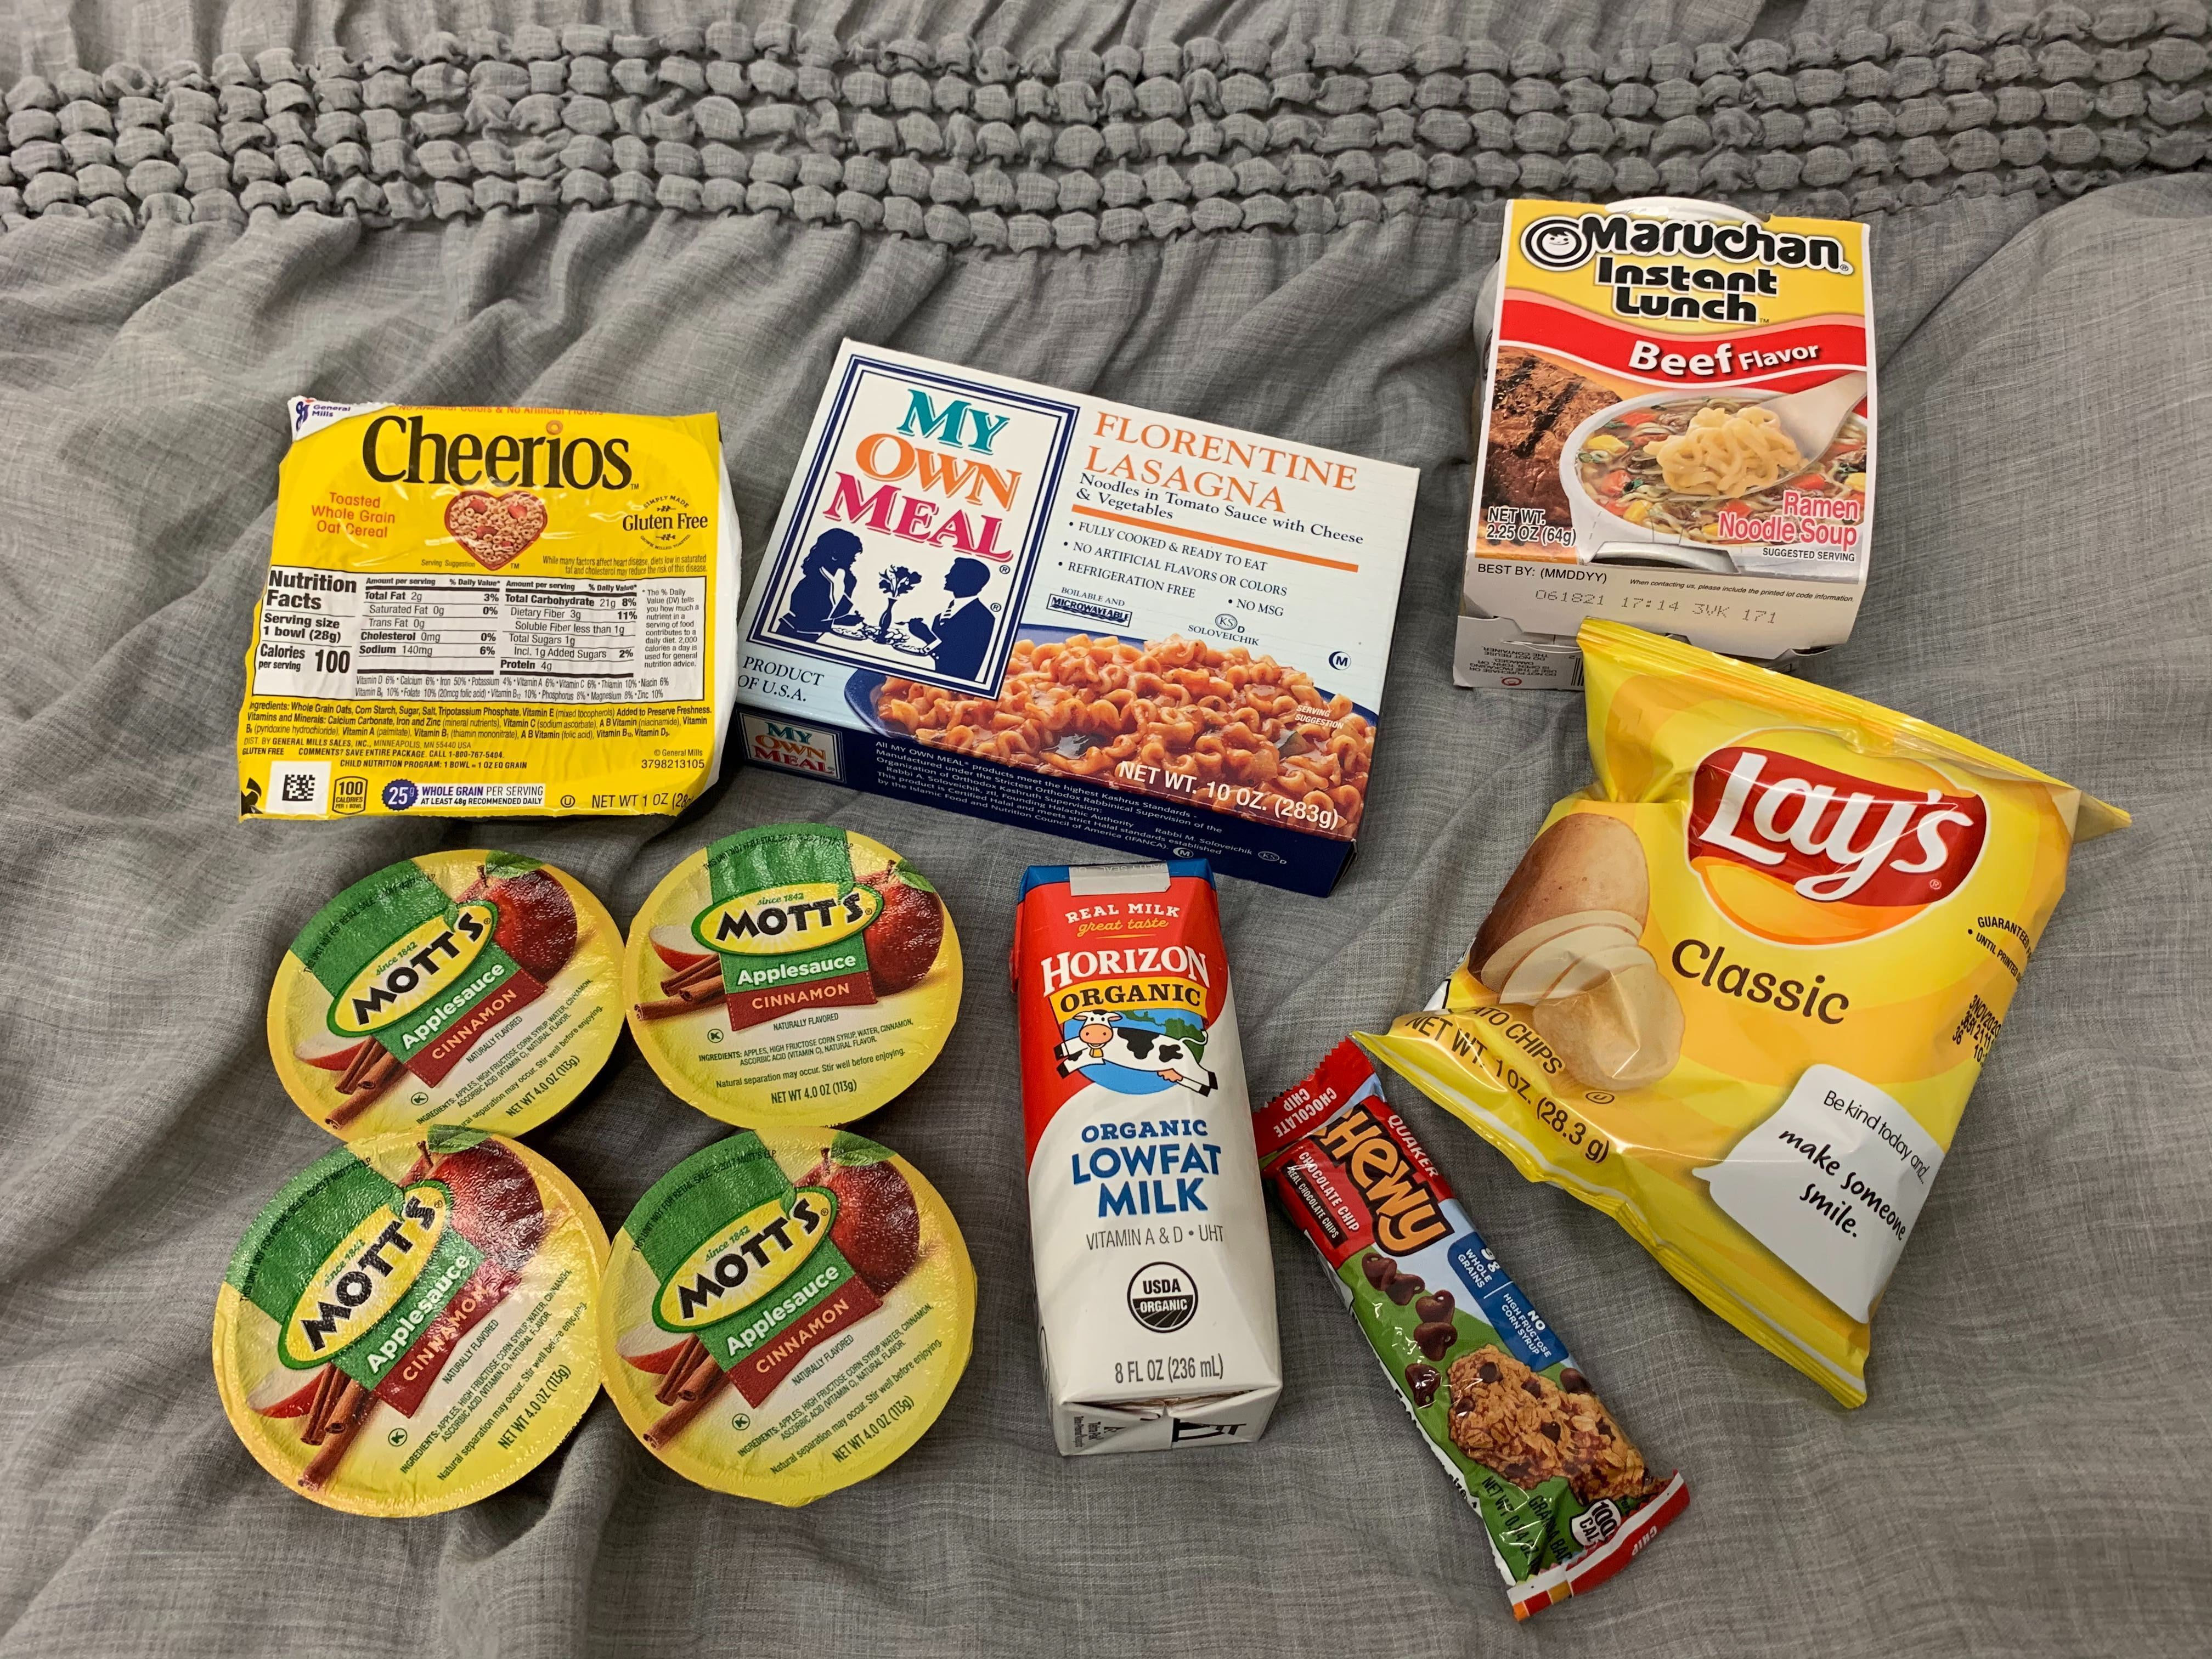 Meal provided to students including; Lays; ramen; apple sauce; milk; a granola bar; and a microwavable meal